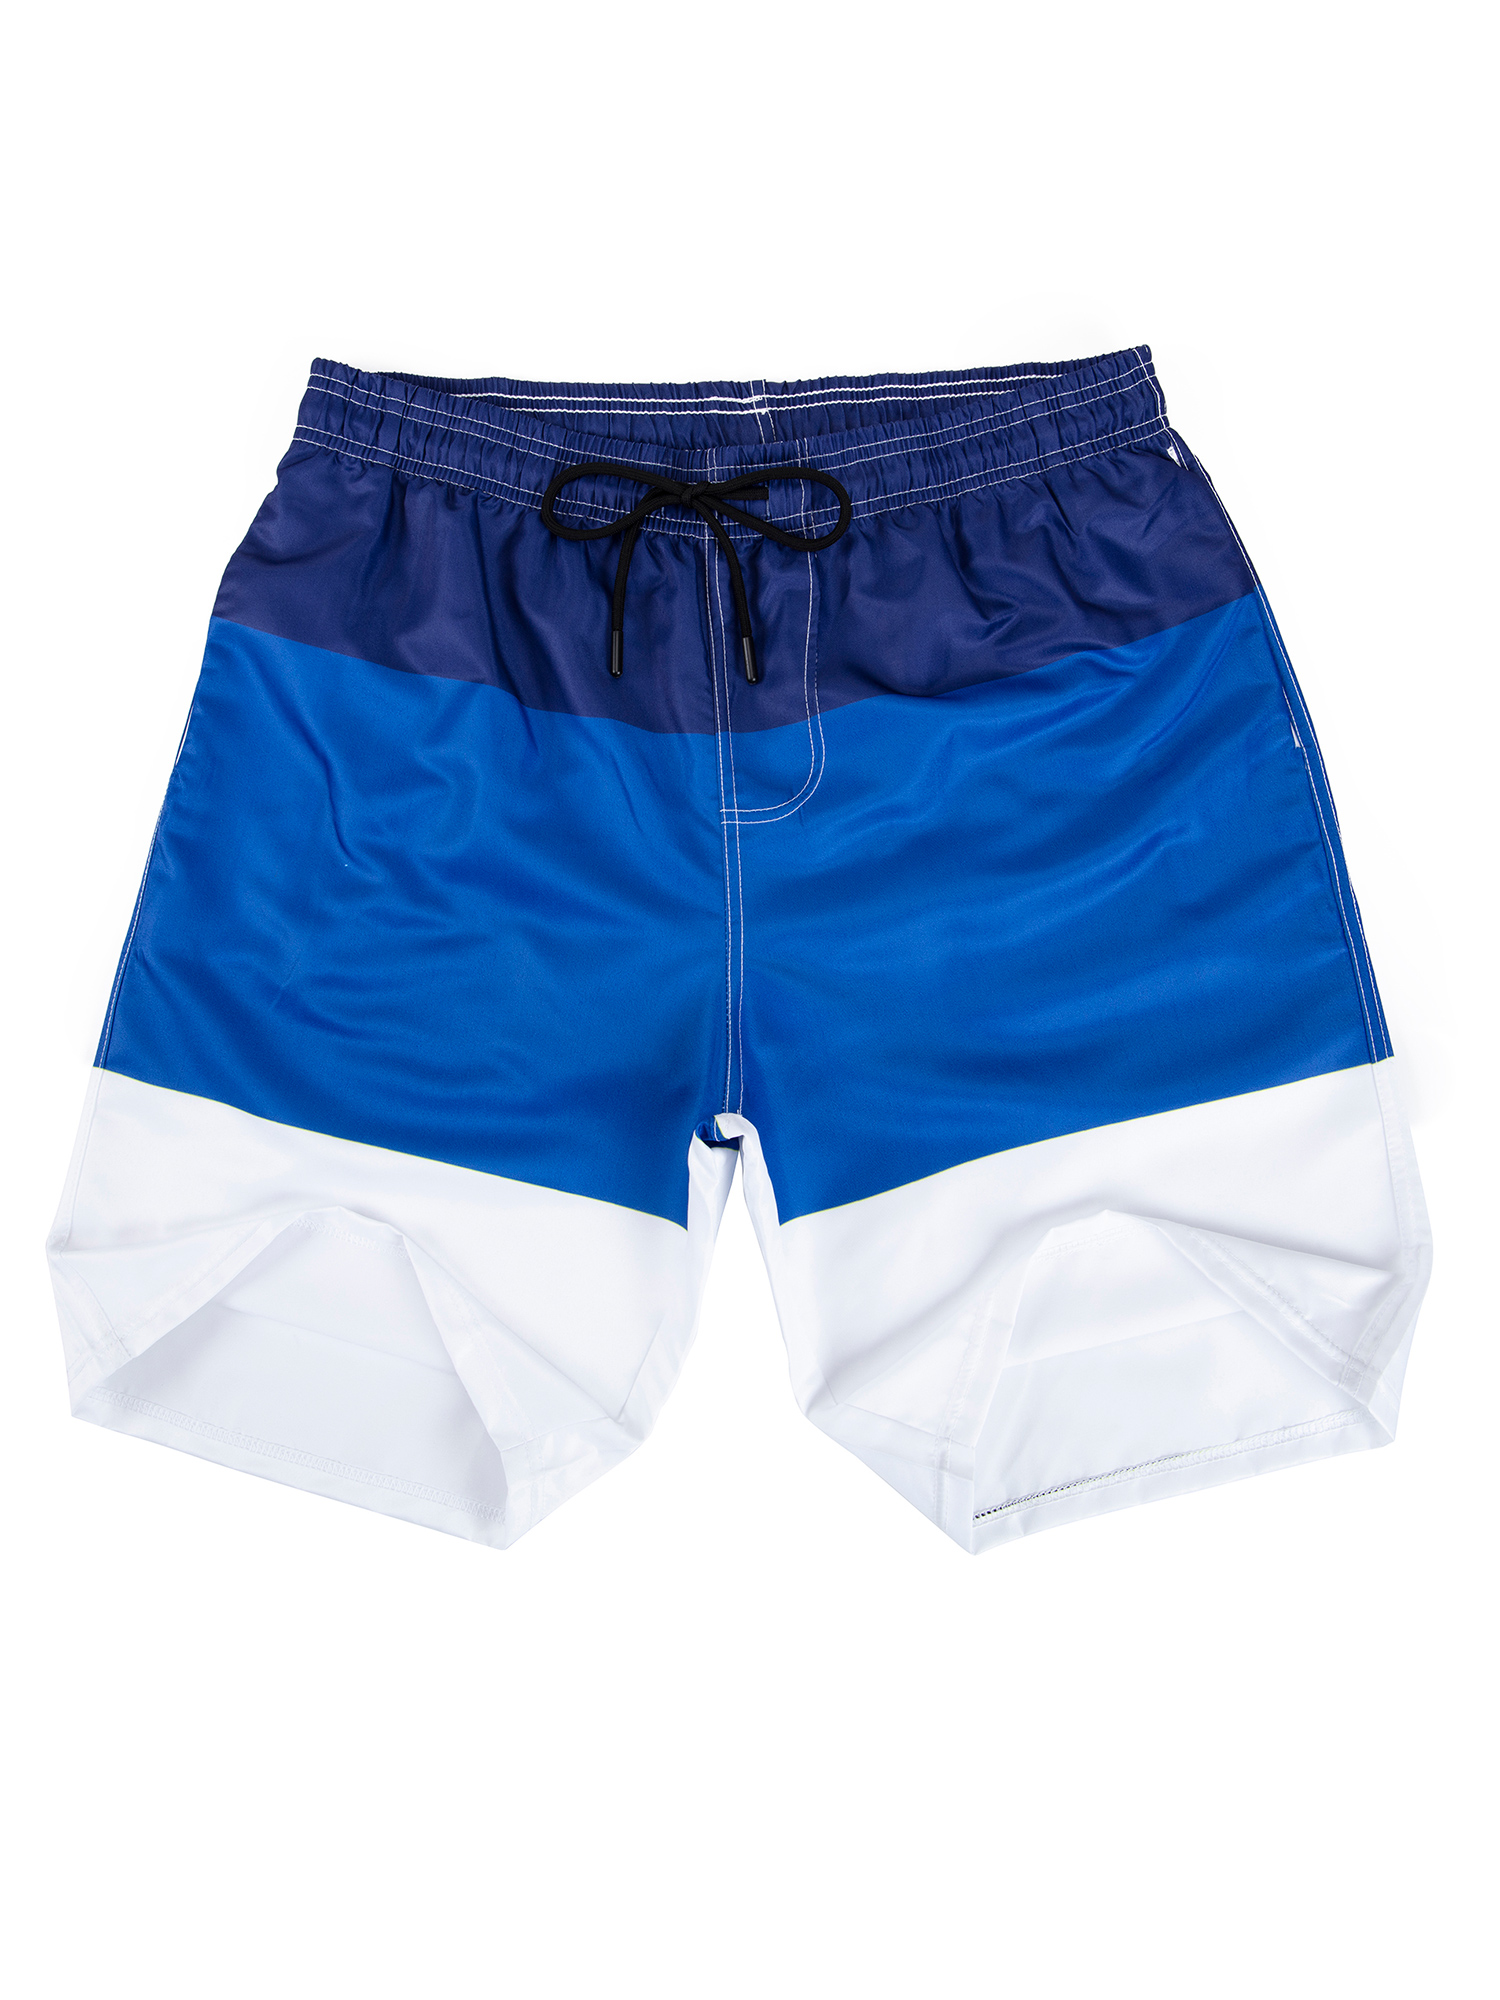 Mens Swim Trunks Wedding Birds Bride and Groom Quick Dry Beach Board Shorts with Mesh Lining